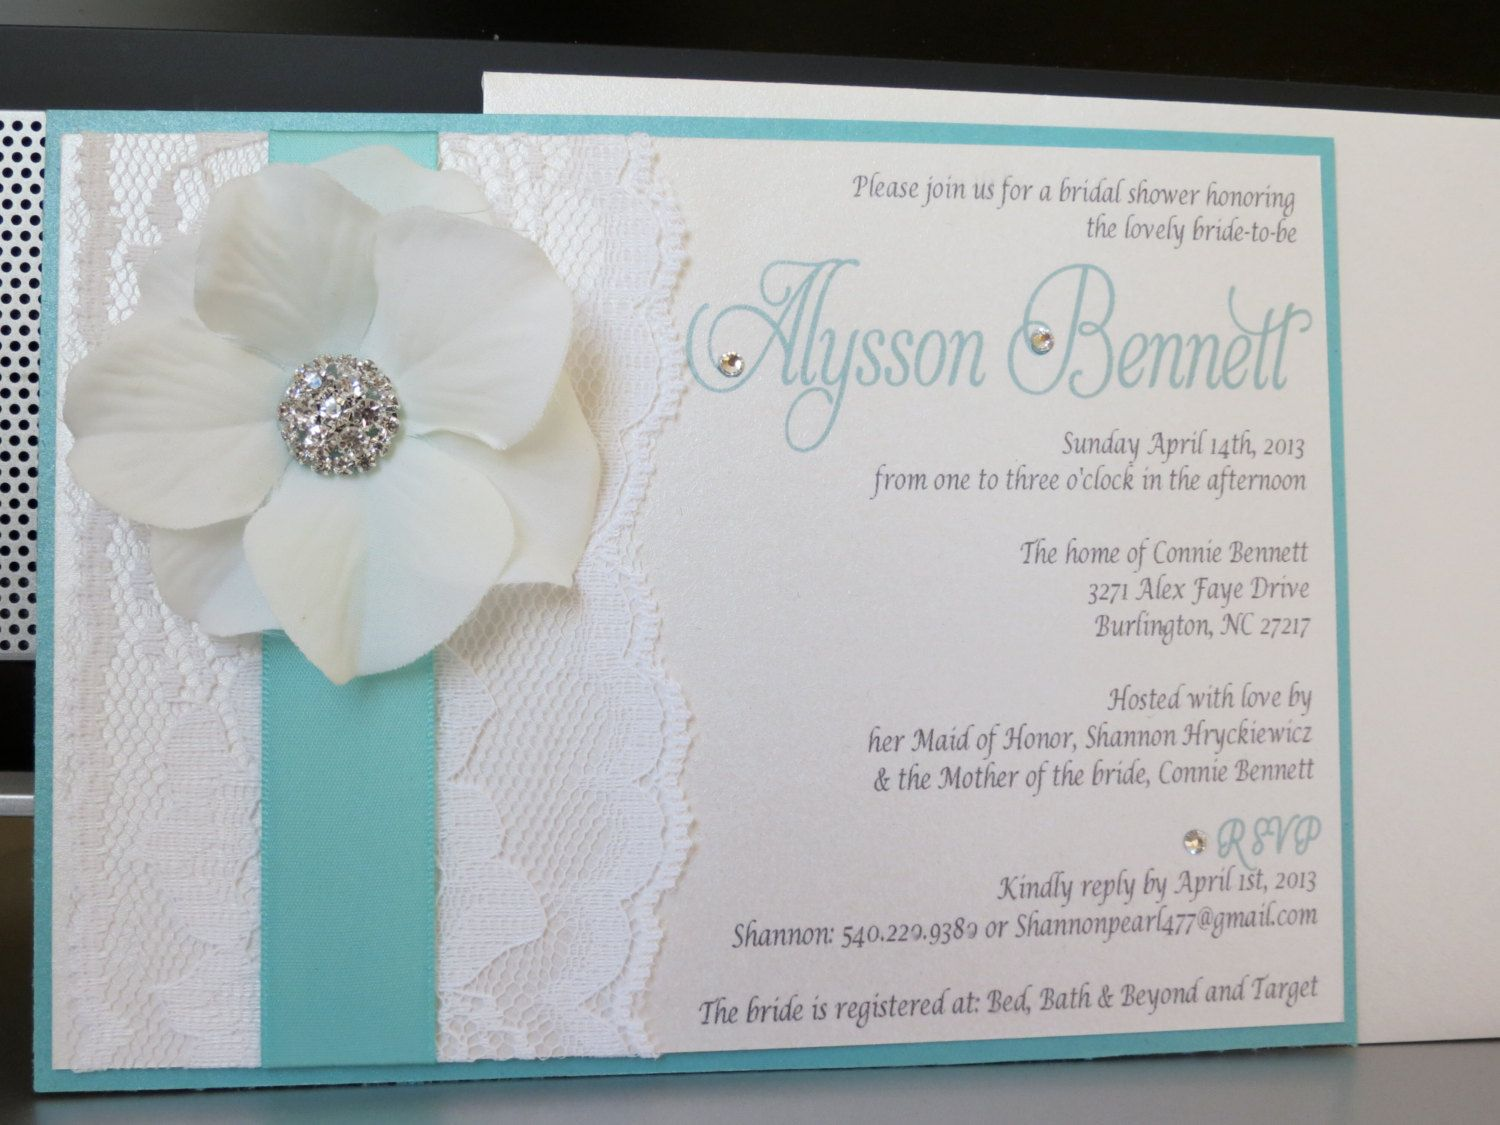 TIFFANY Themed Wedding Shower Invitation - Tiffany Blue or Mint and ...